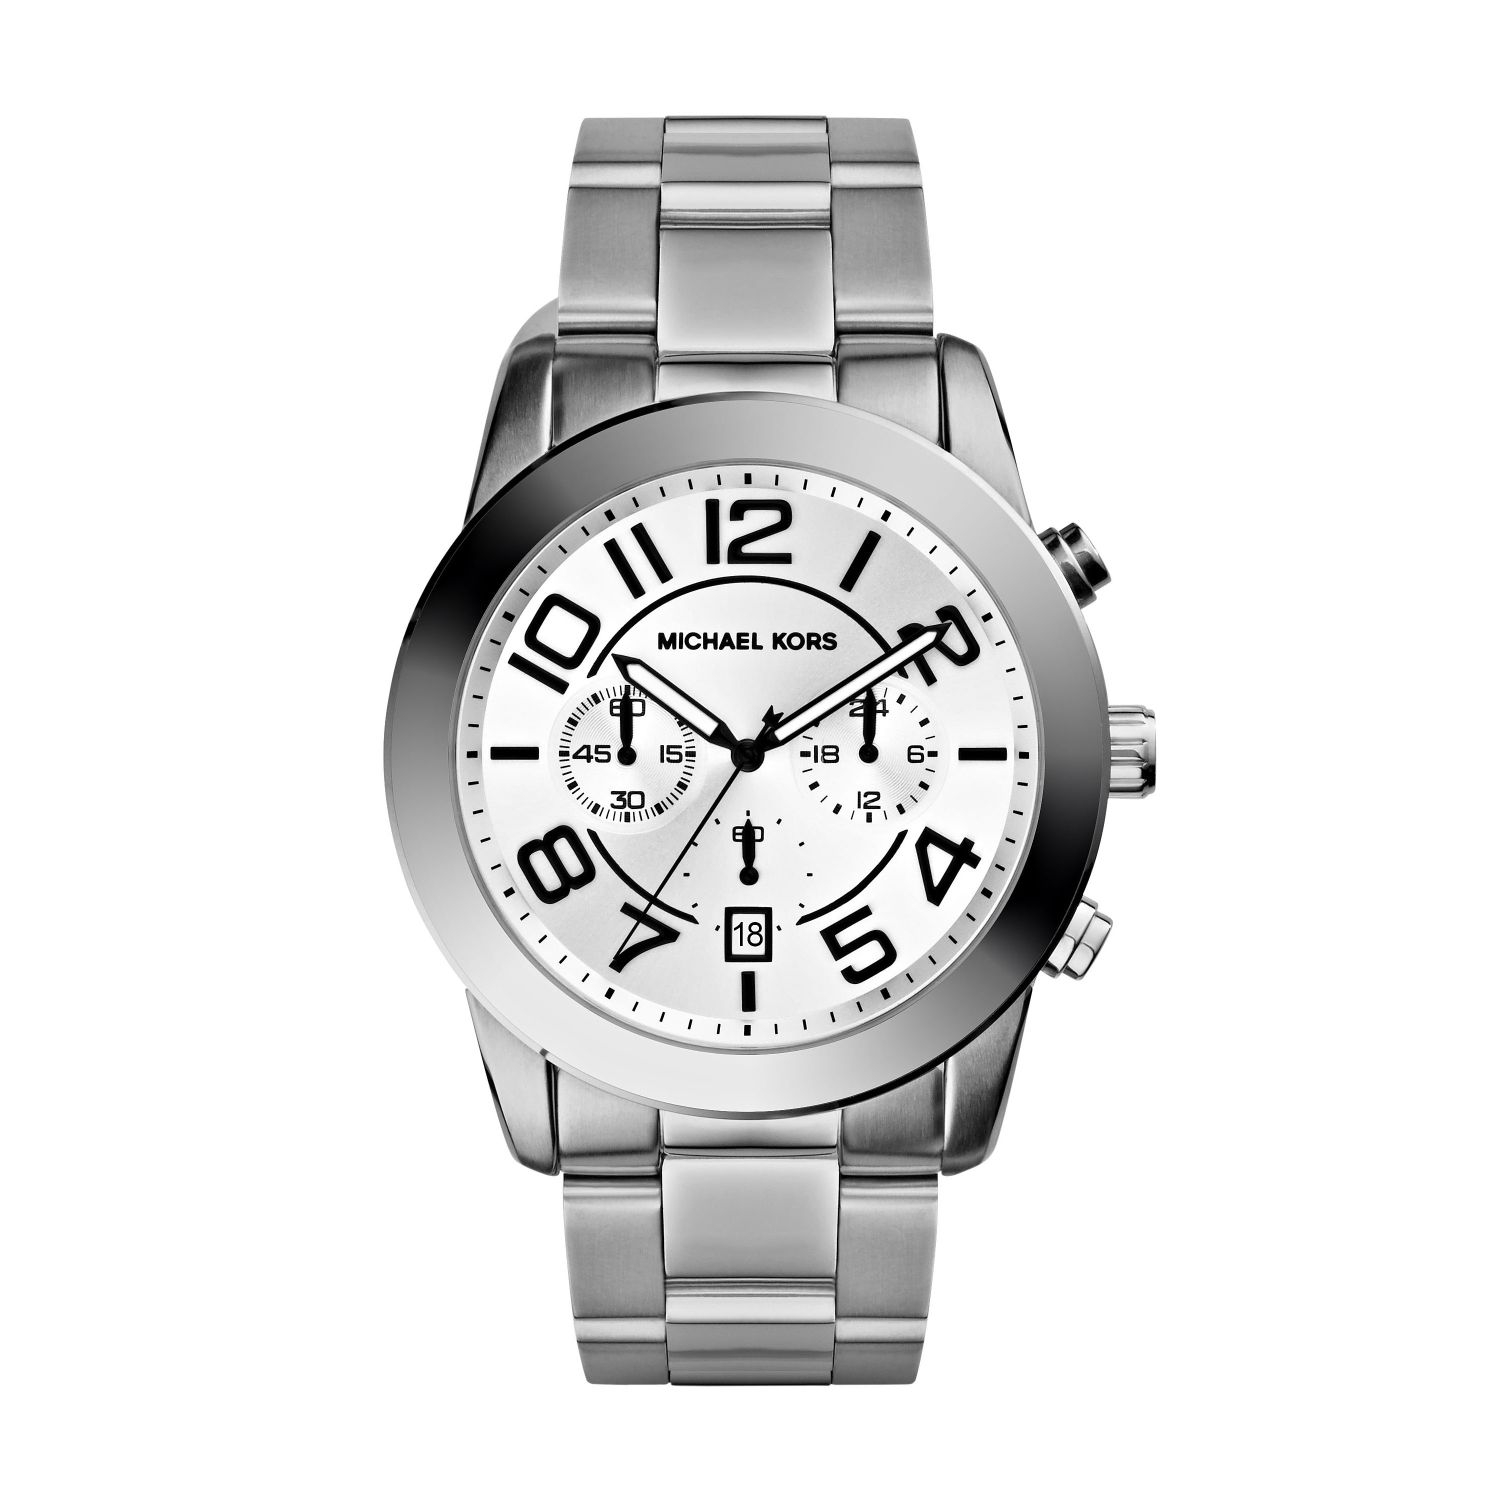 3df04cc4866c Lyst - Michael Kors Mercer Silver-tone Watch in Metallic for Men